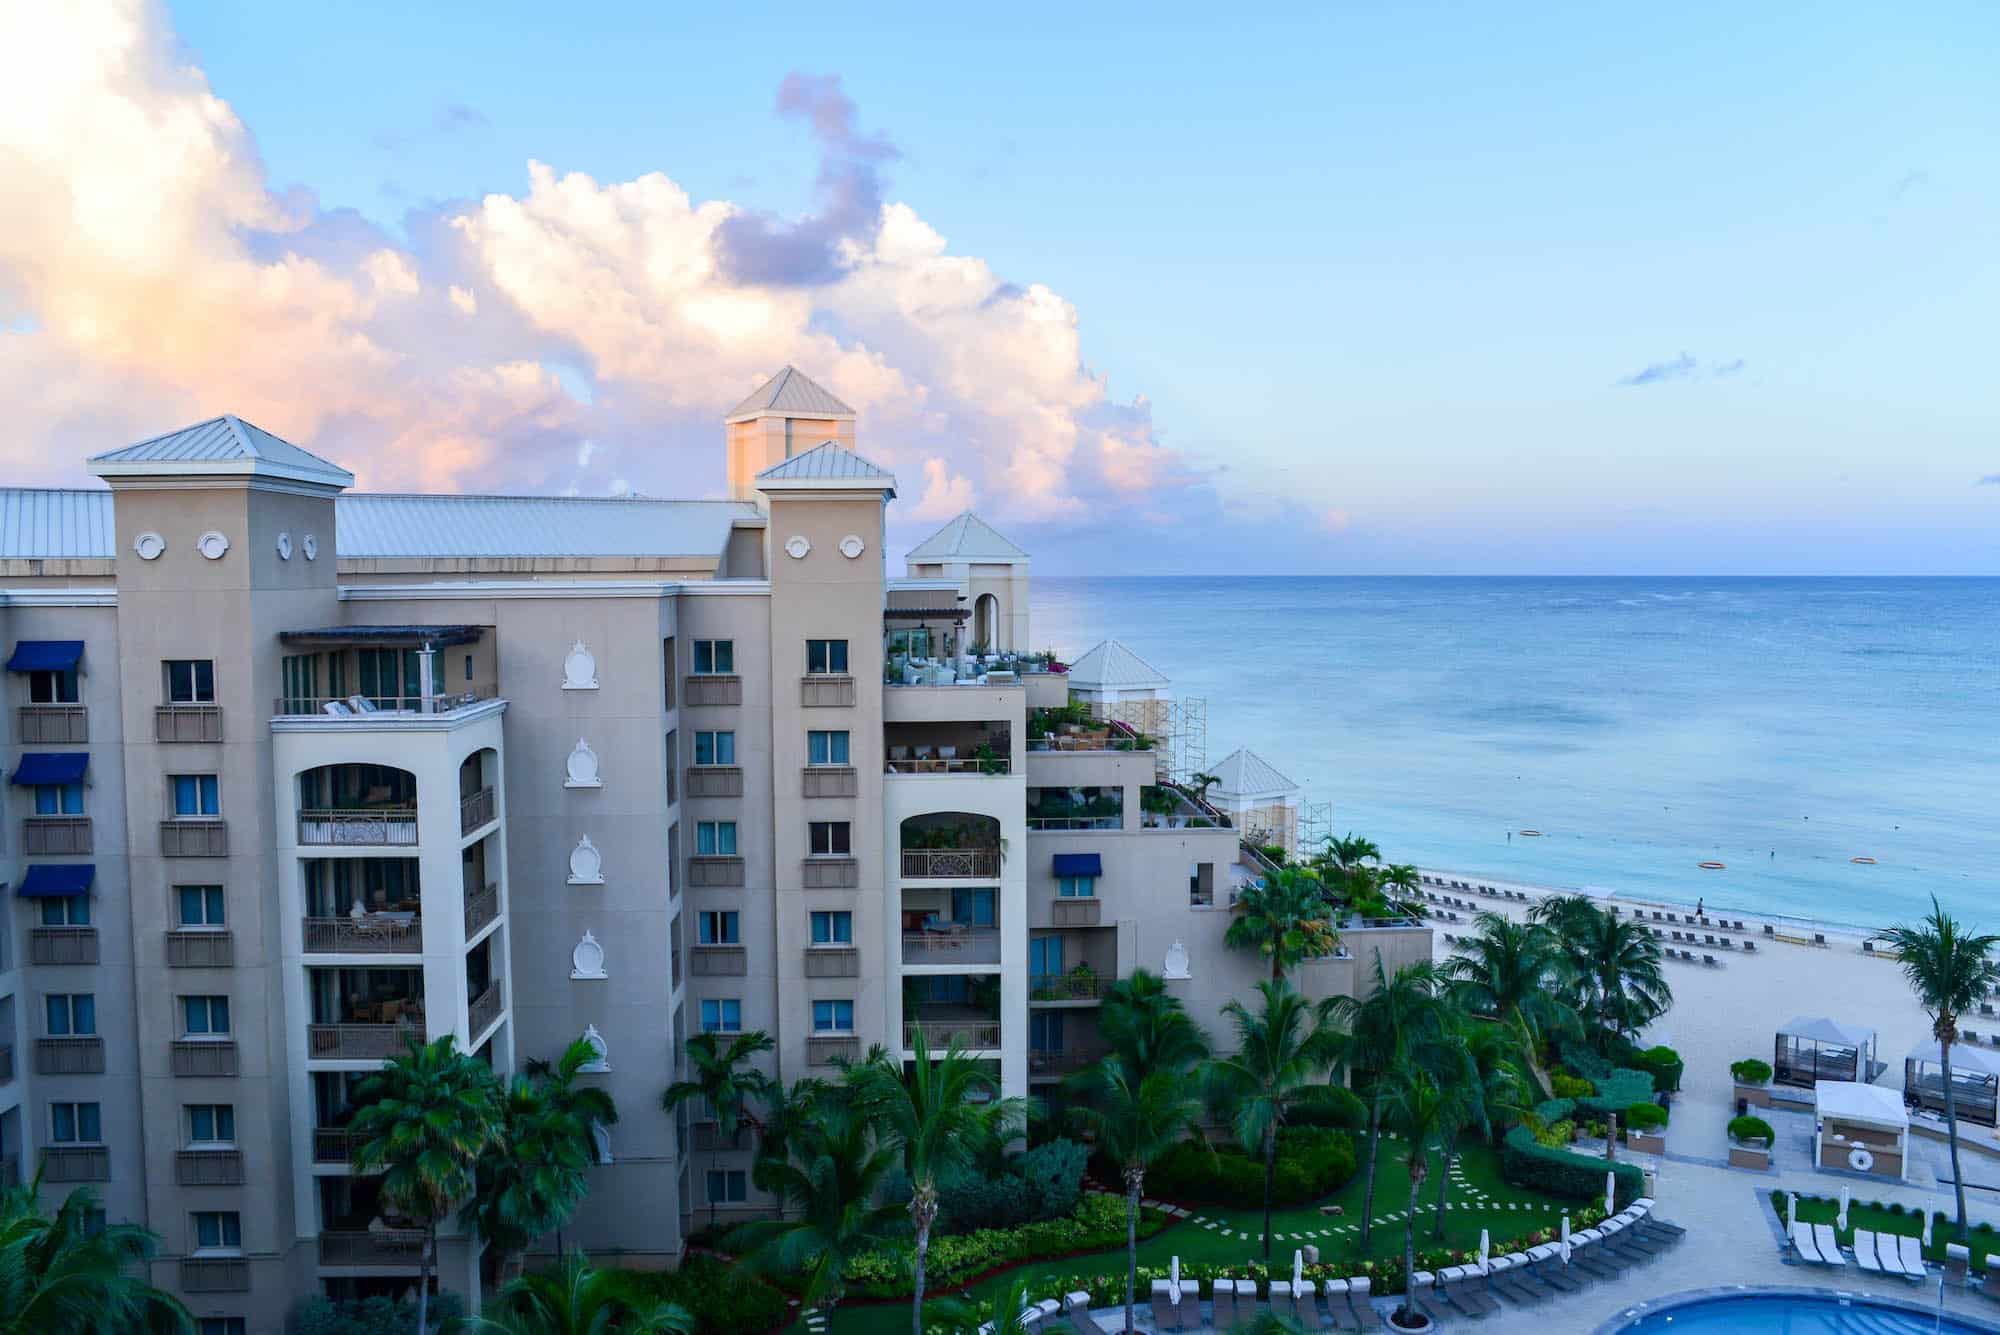 Ritz-Carlton Grand Cayman Beach